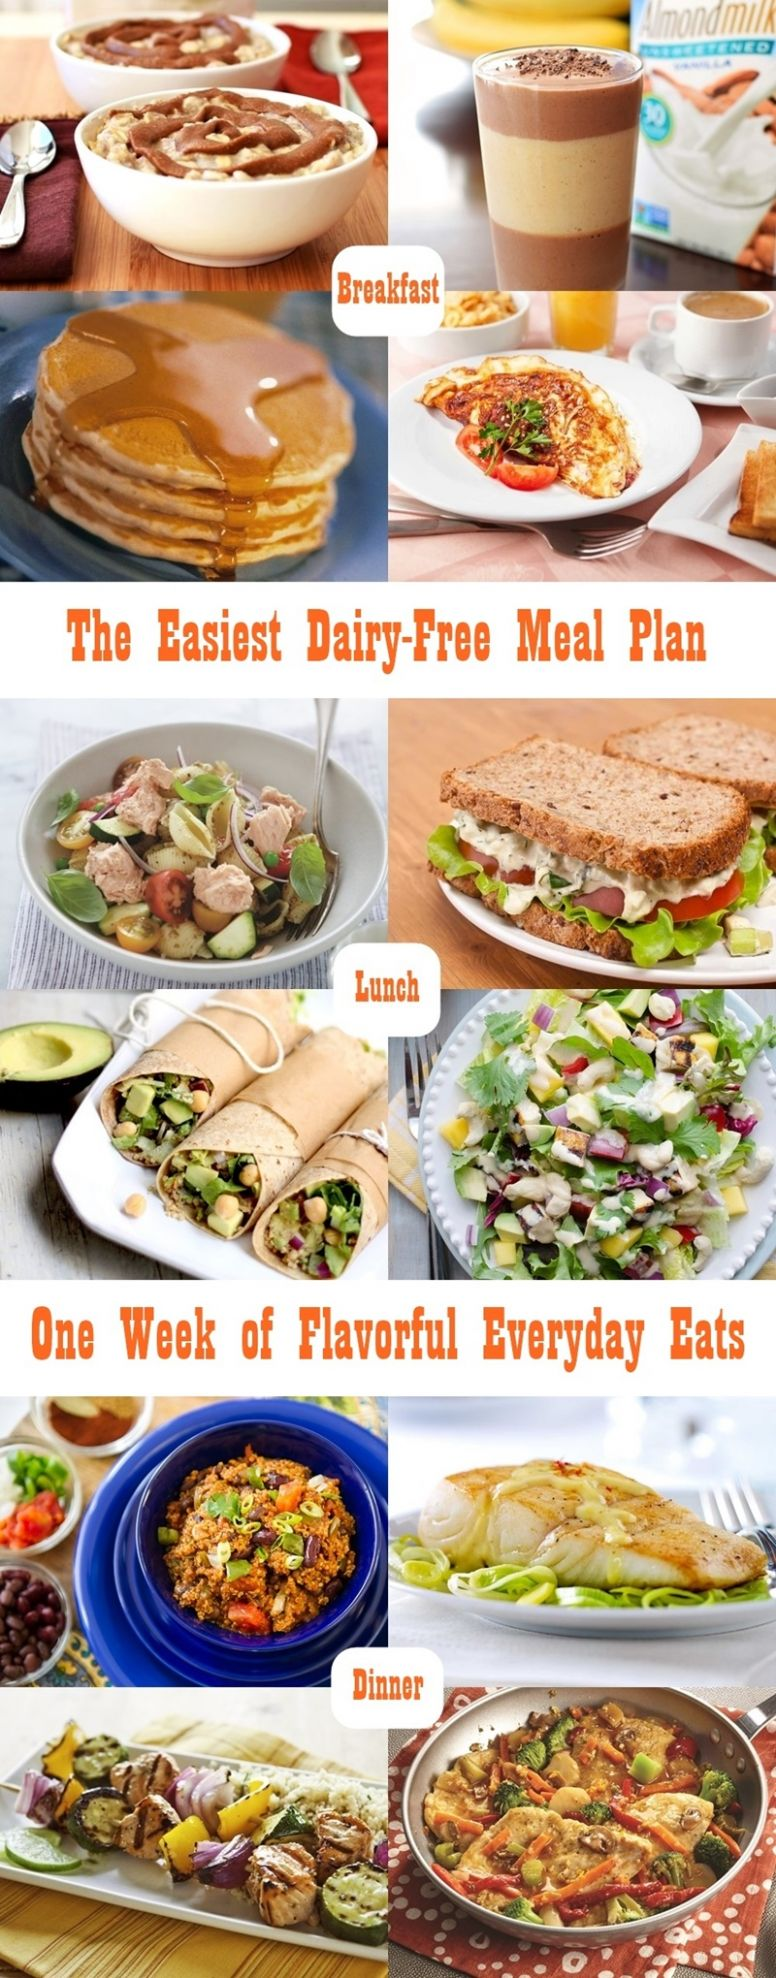 The Easiest Dairy-Free Meal Plan (gluten-free optional) - Easy Recipes Gluten Free Dairy Free